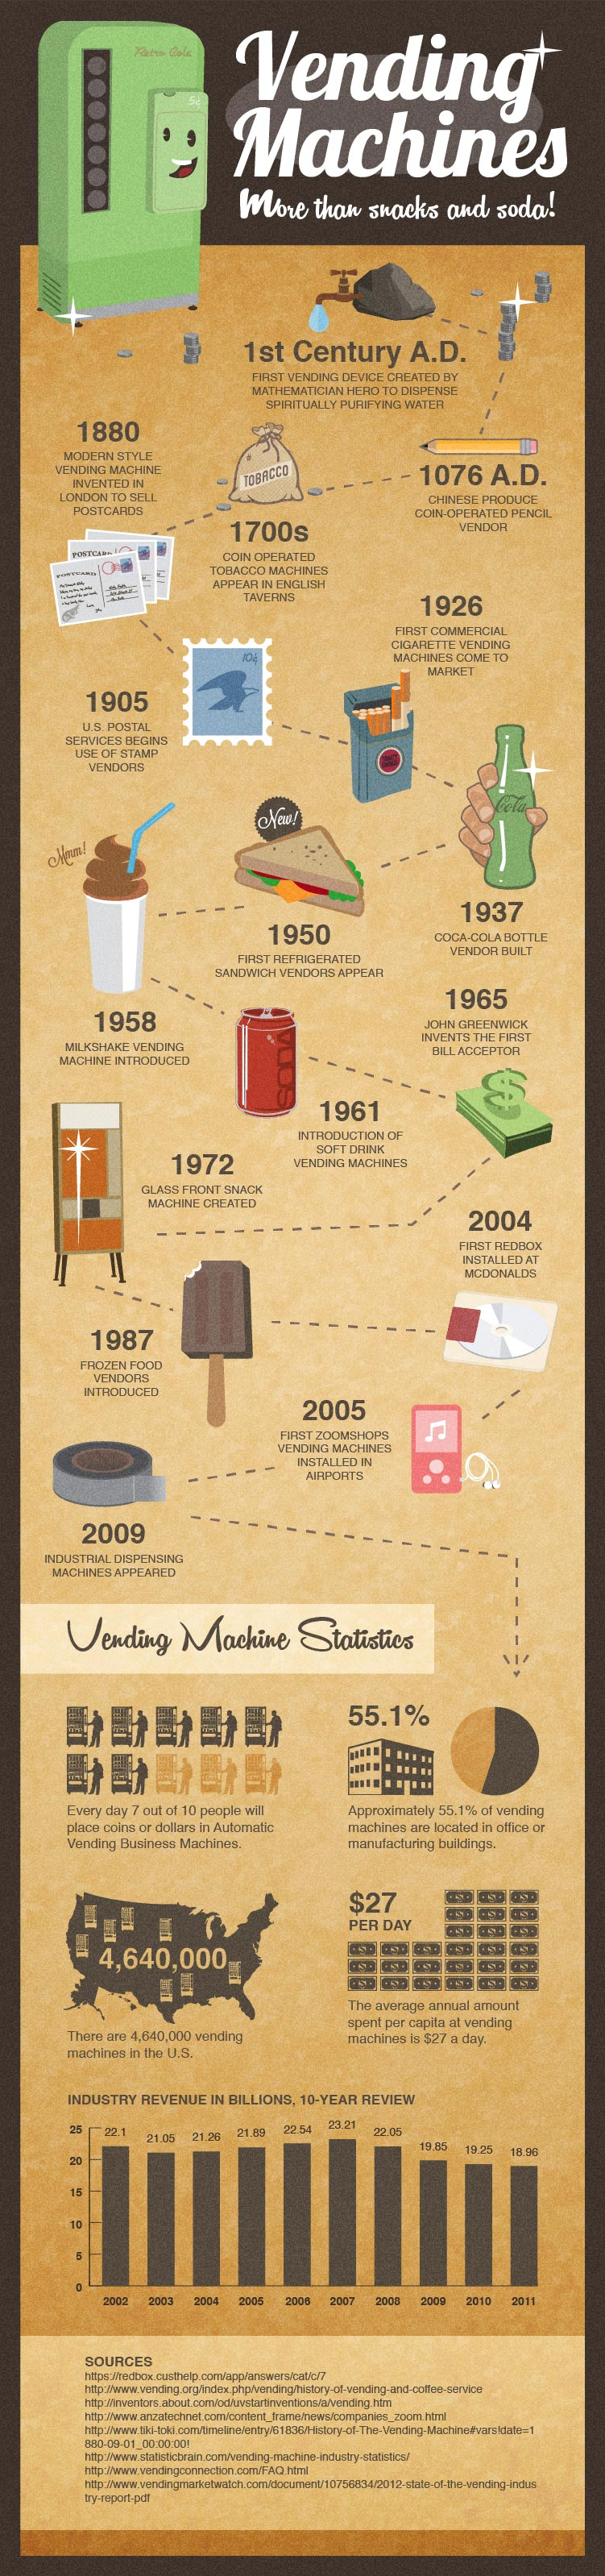 Vending Machines History